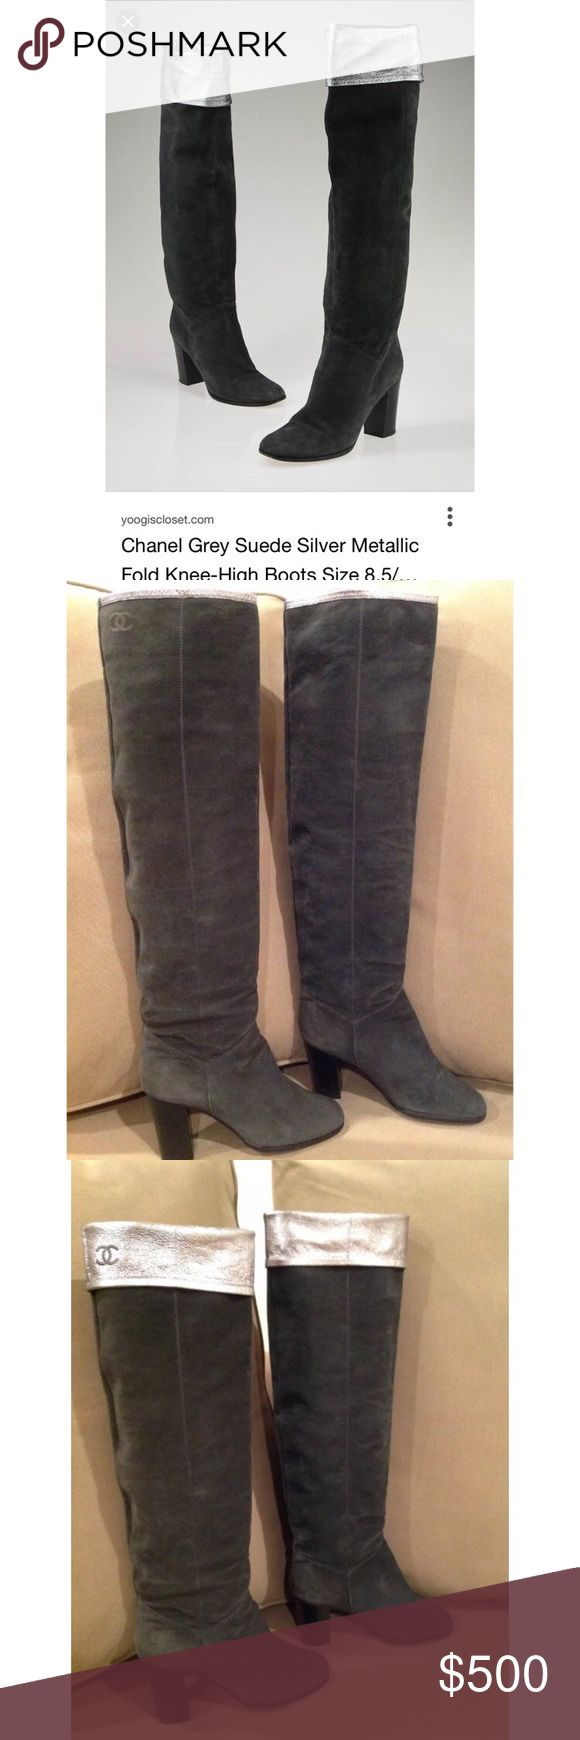 """Chanel Knee Length Suede Leather boots 38.5 US 8 100% AUTHENTIC. Chanel over the knee gray suede boots with silver cuff. CC embroidery on the silver cuff. Cuff length is regulated by the size of the cuff. Can be worn thigh high, with cuff or slouchy. Size 38.5, fit size 8, about 9 3/4"""" long inside the shoe. Length without cuff from the bottom of the heel to the top of the boot is about 25.3"""". Hill height about 3.3"""". Used several times only, the sing of wear on the bottom of the boots and…"""